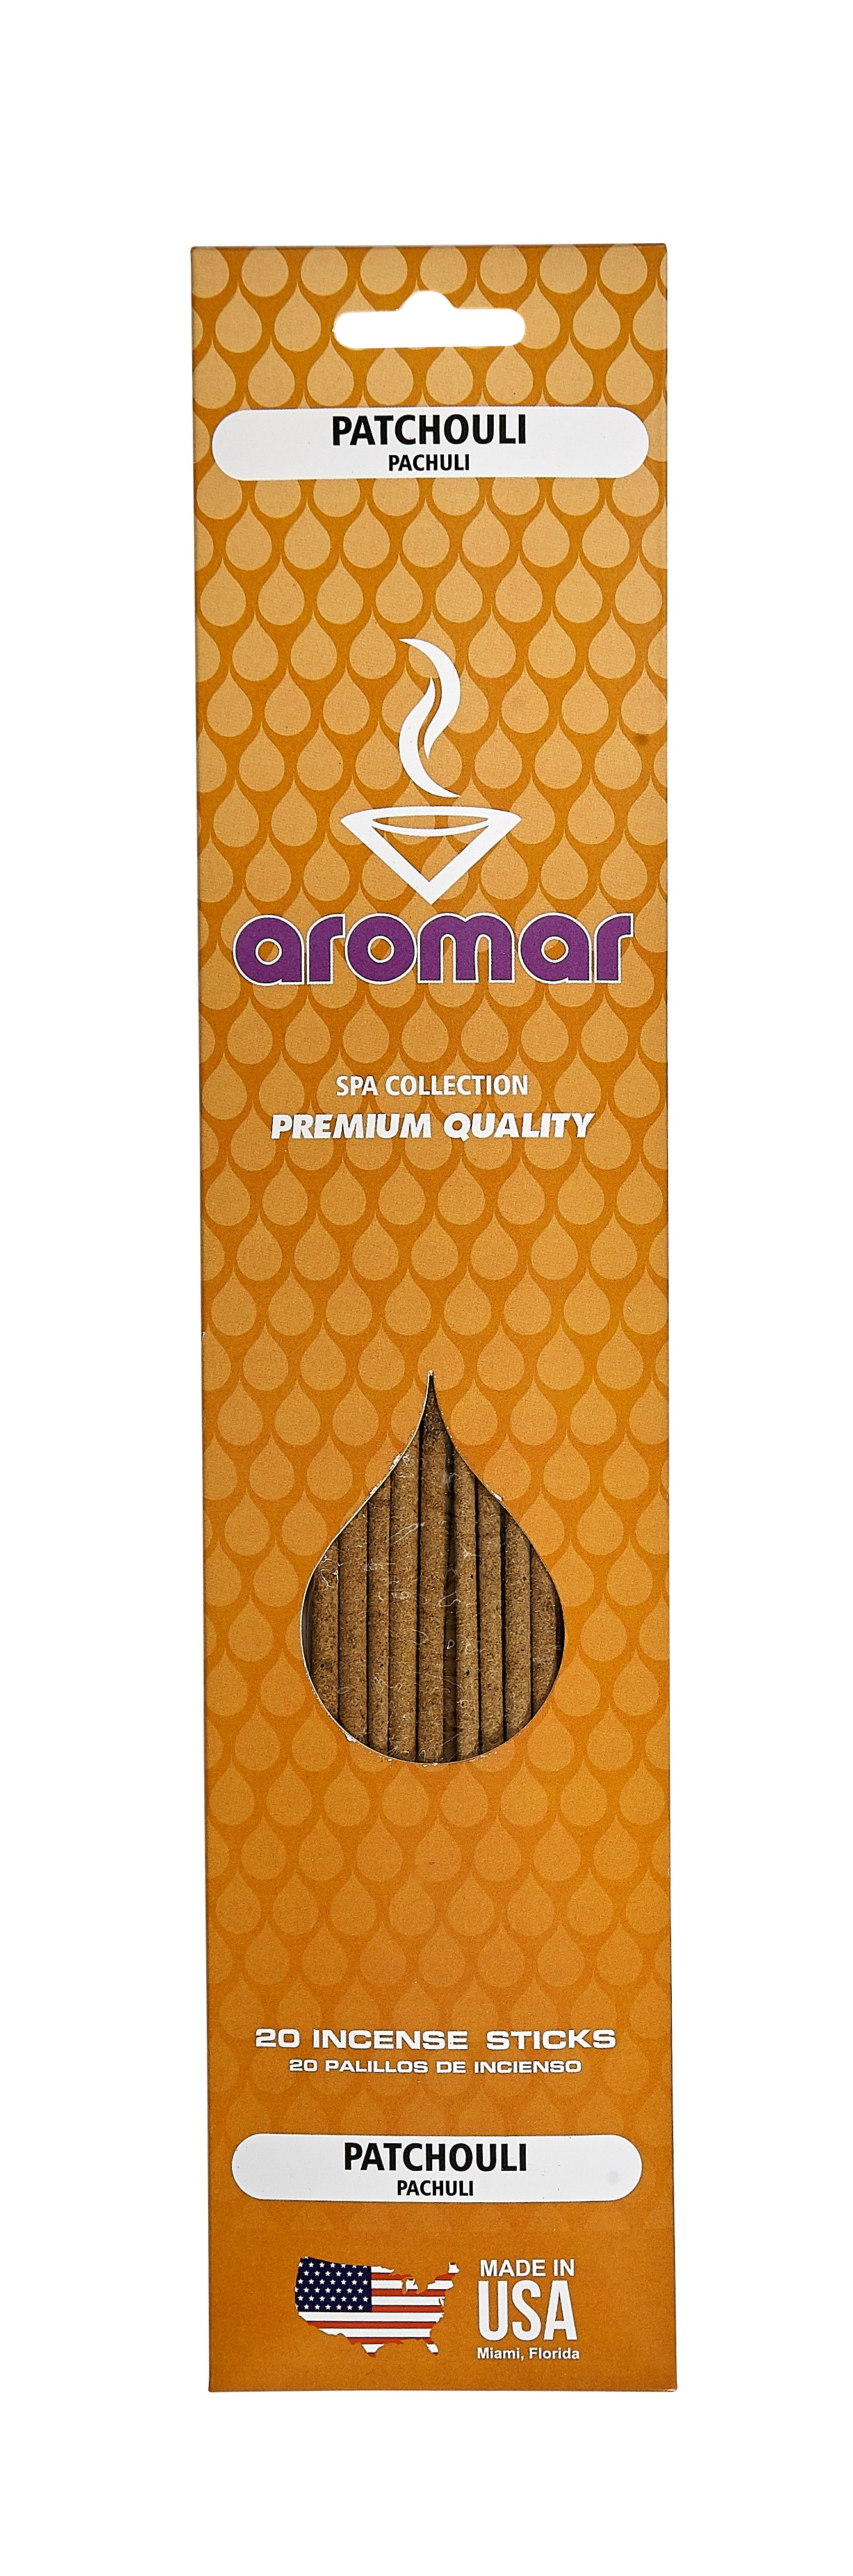 Aromar Premium Patchouli Hand Dipped Incense Sticks